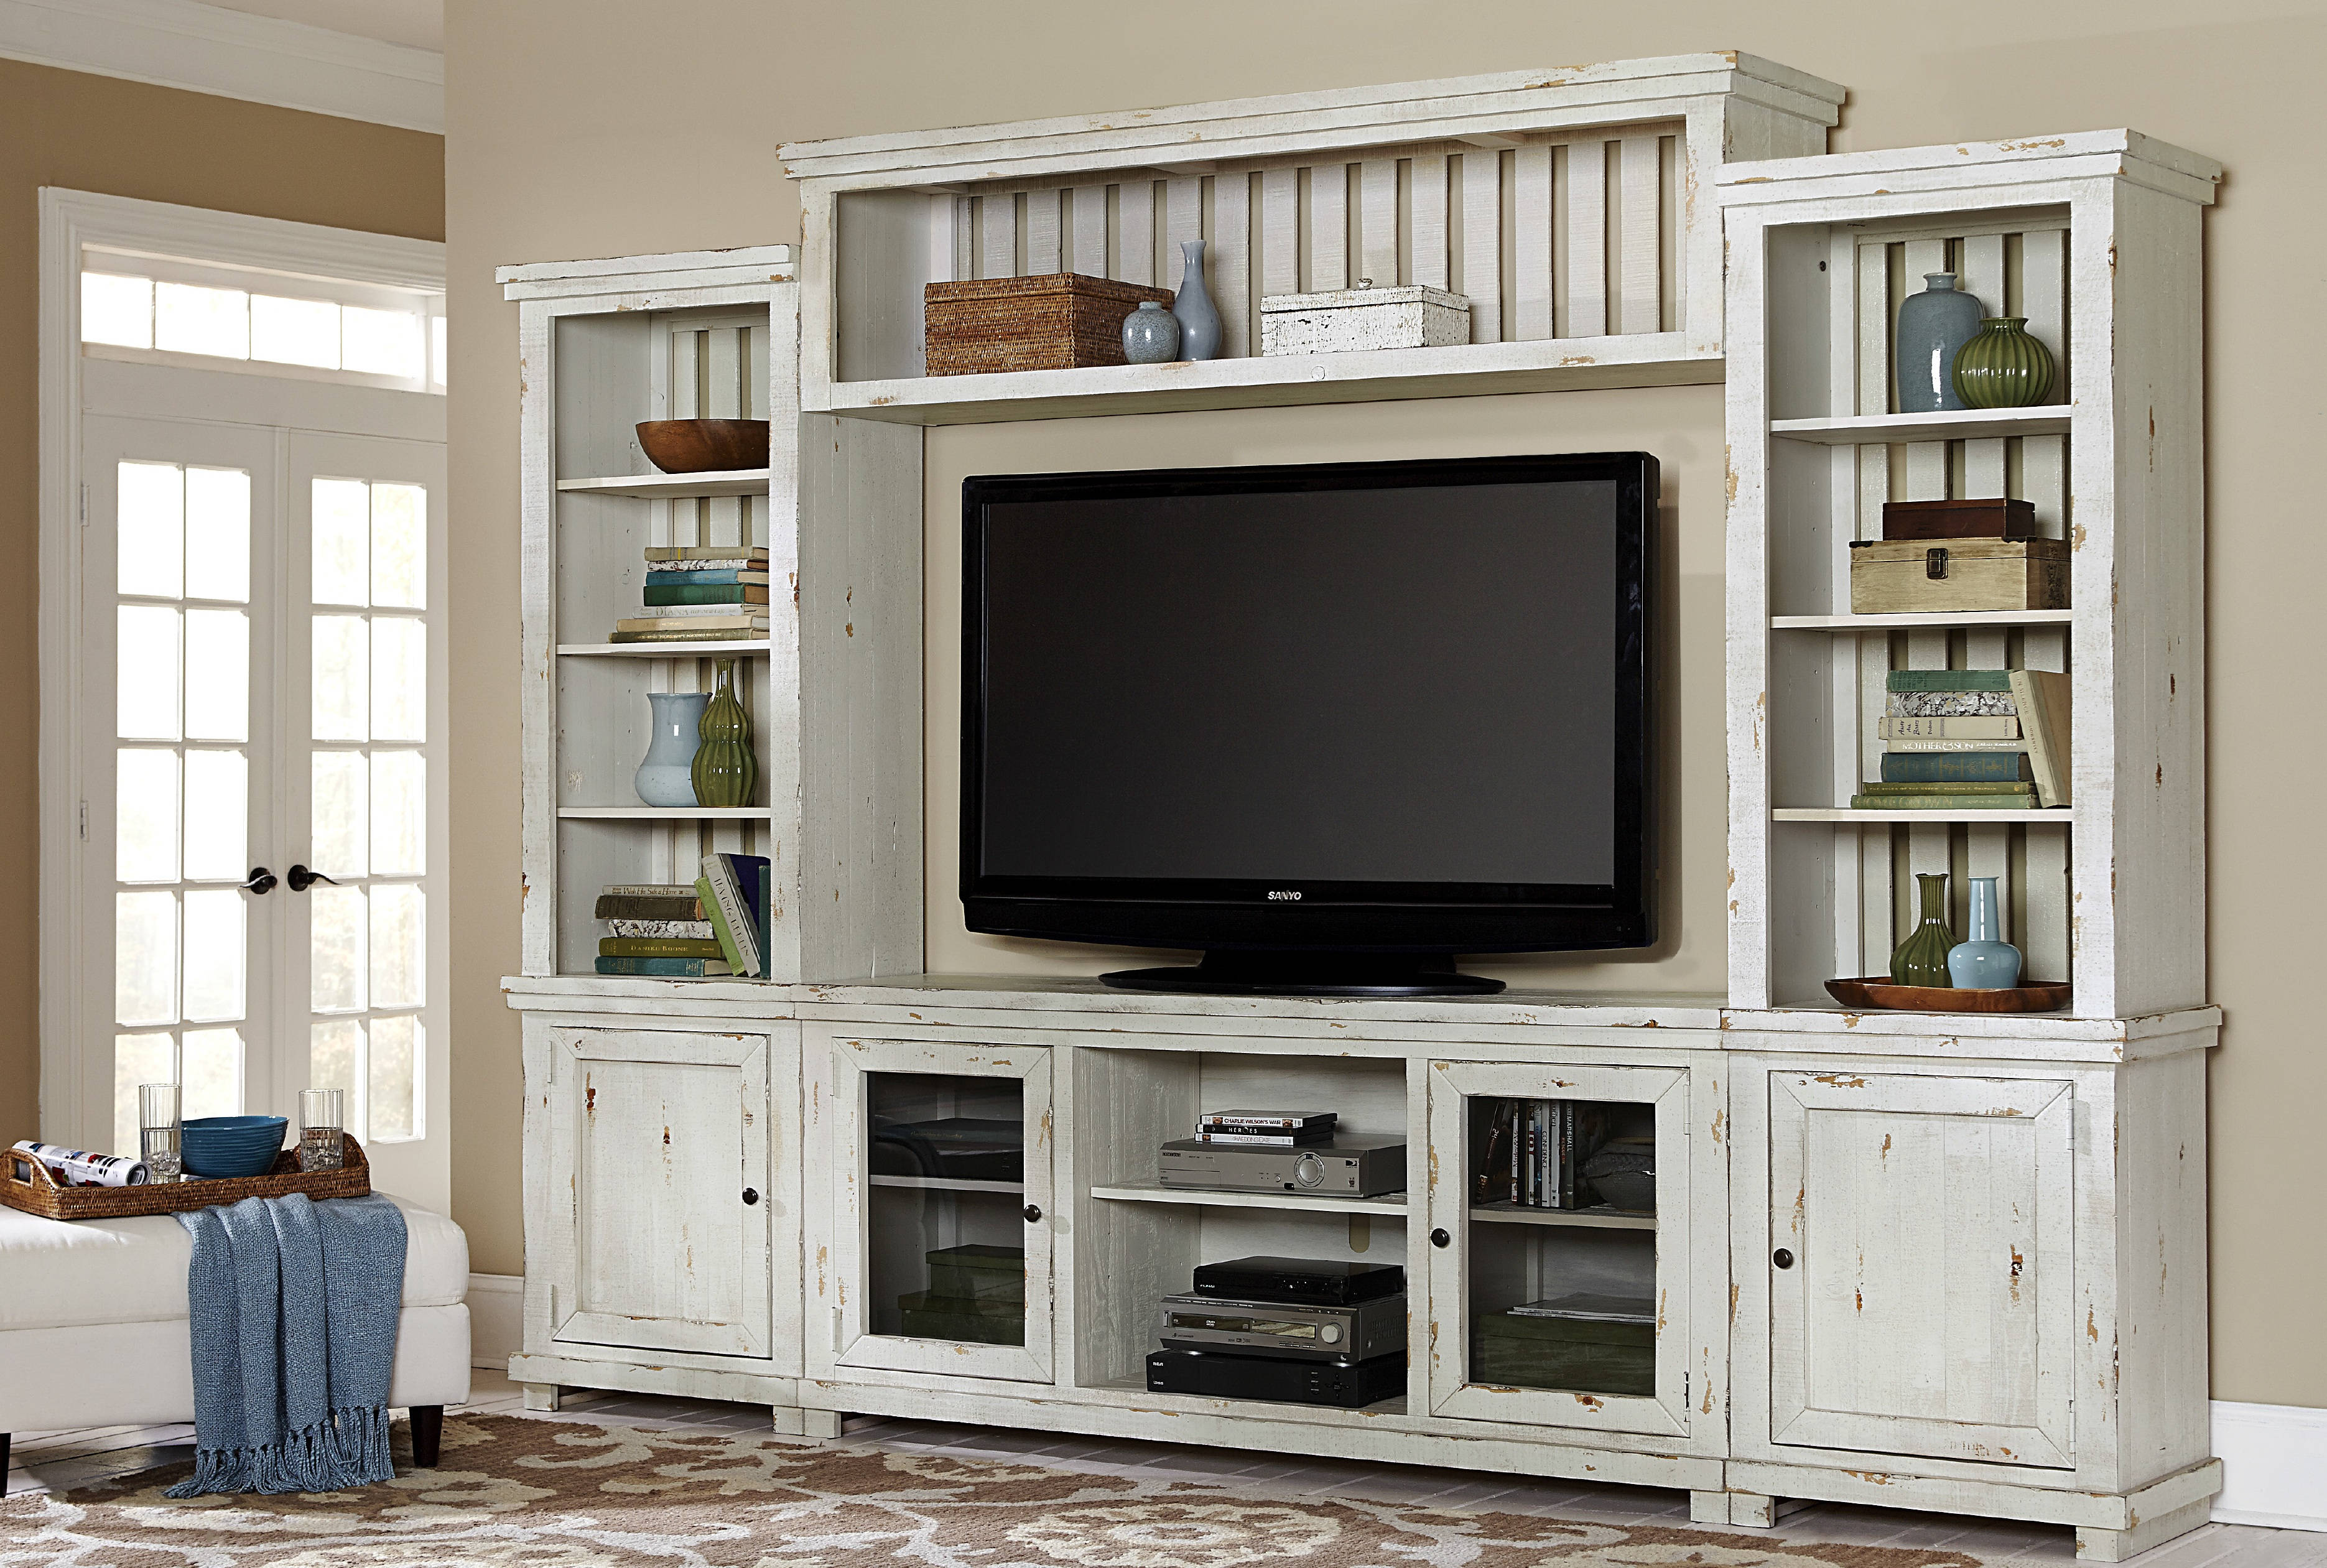 Progressive Furniture Willow Distressed White Wall Unit with TV ...